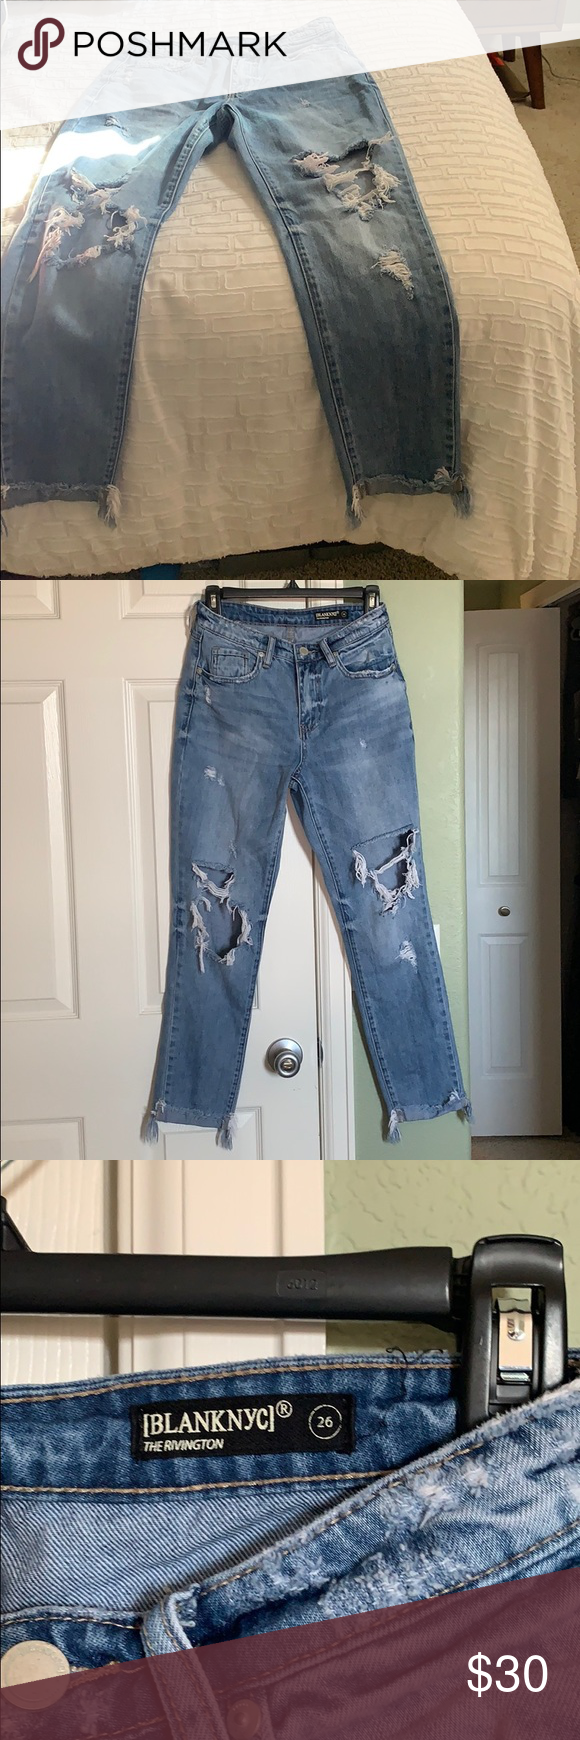 BlankNYC jeans Blank nyc, Blank nyc jeans, Cropped jeans